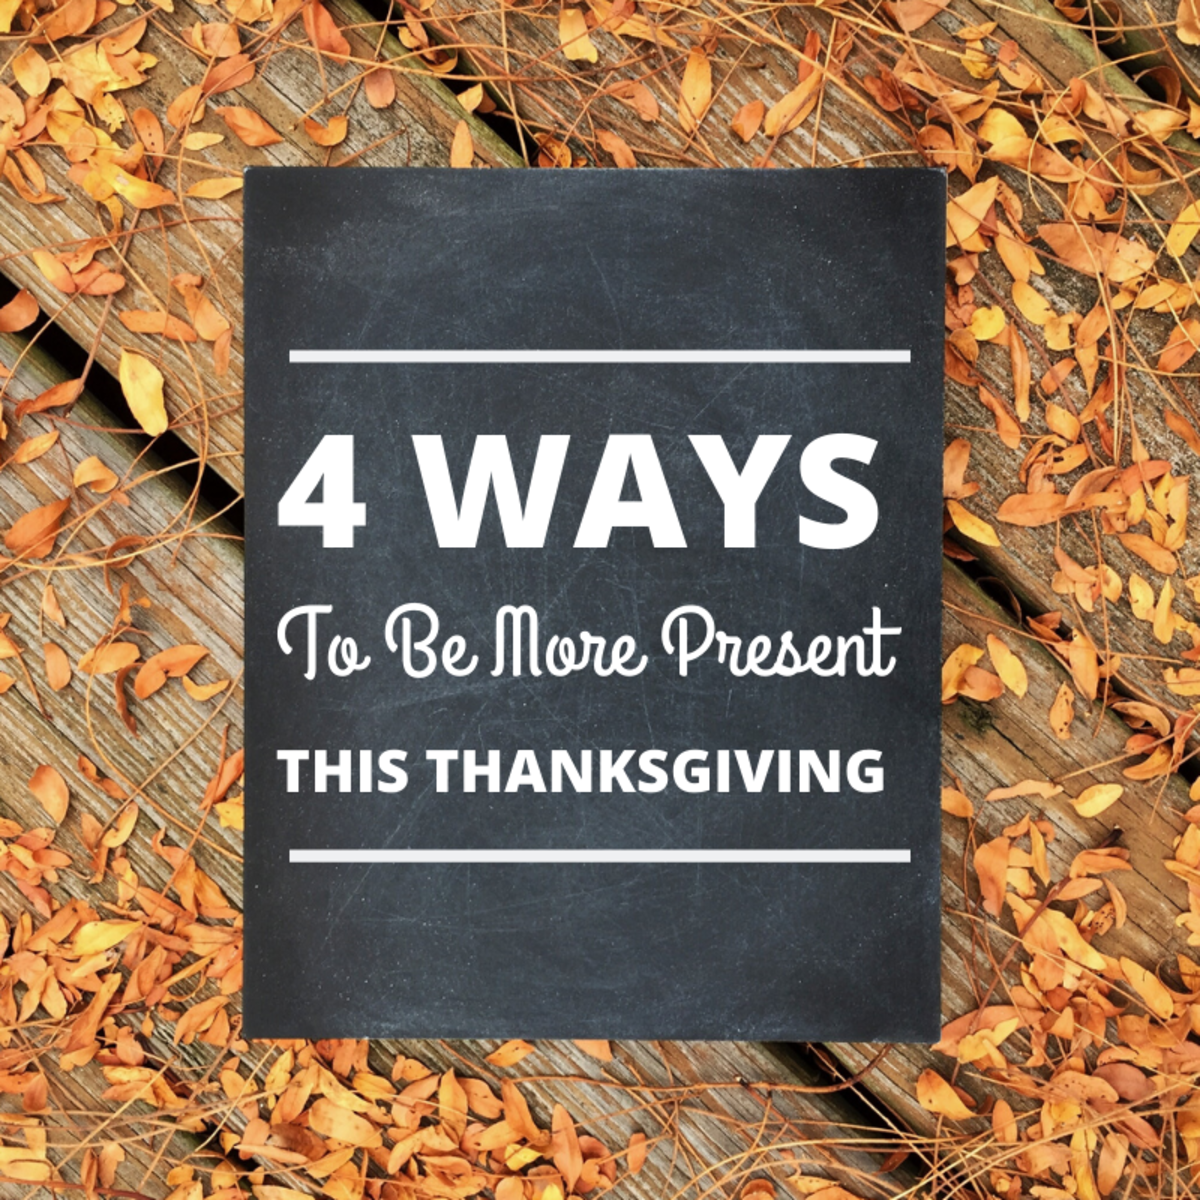 Why not celebrate Thanksgiving mindfully this year? Here are four ways to reduce stress and make the most of your holiday.